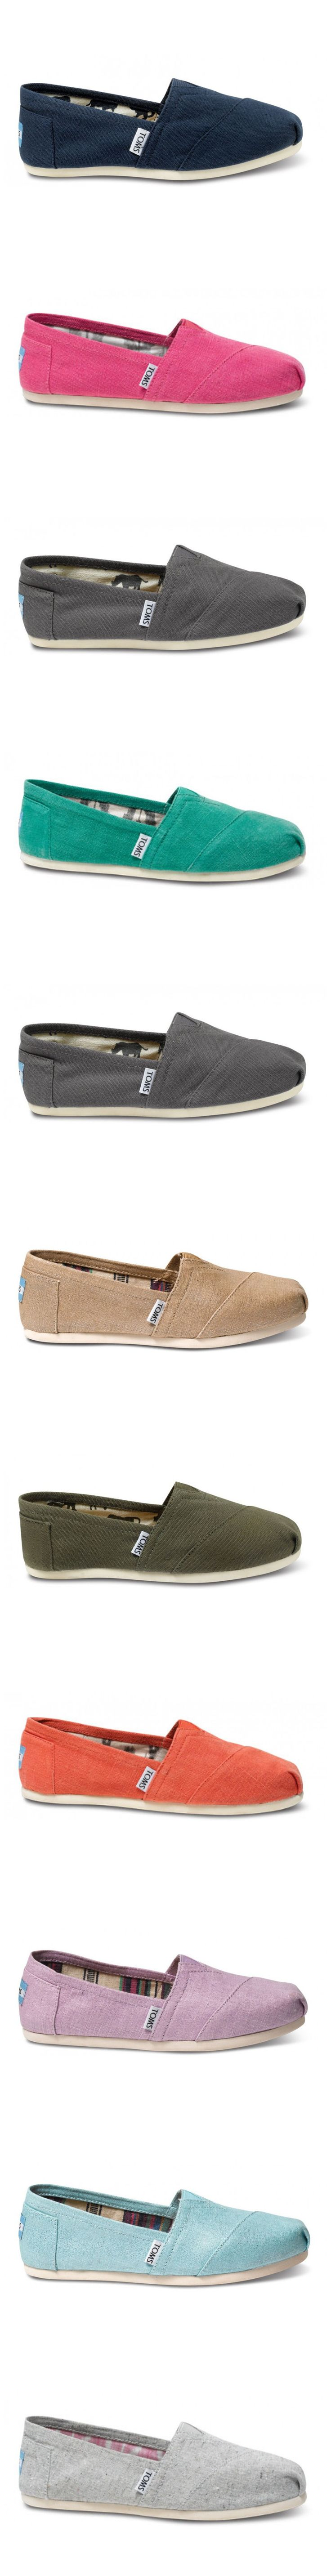 Toms Shoes Outlet! $19.99